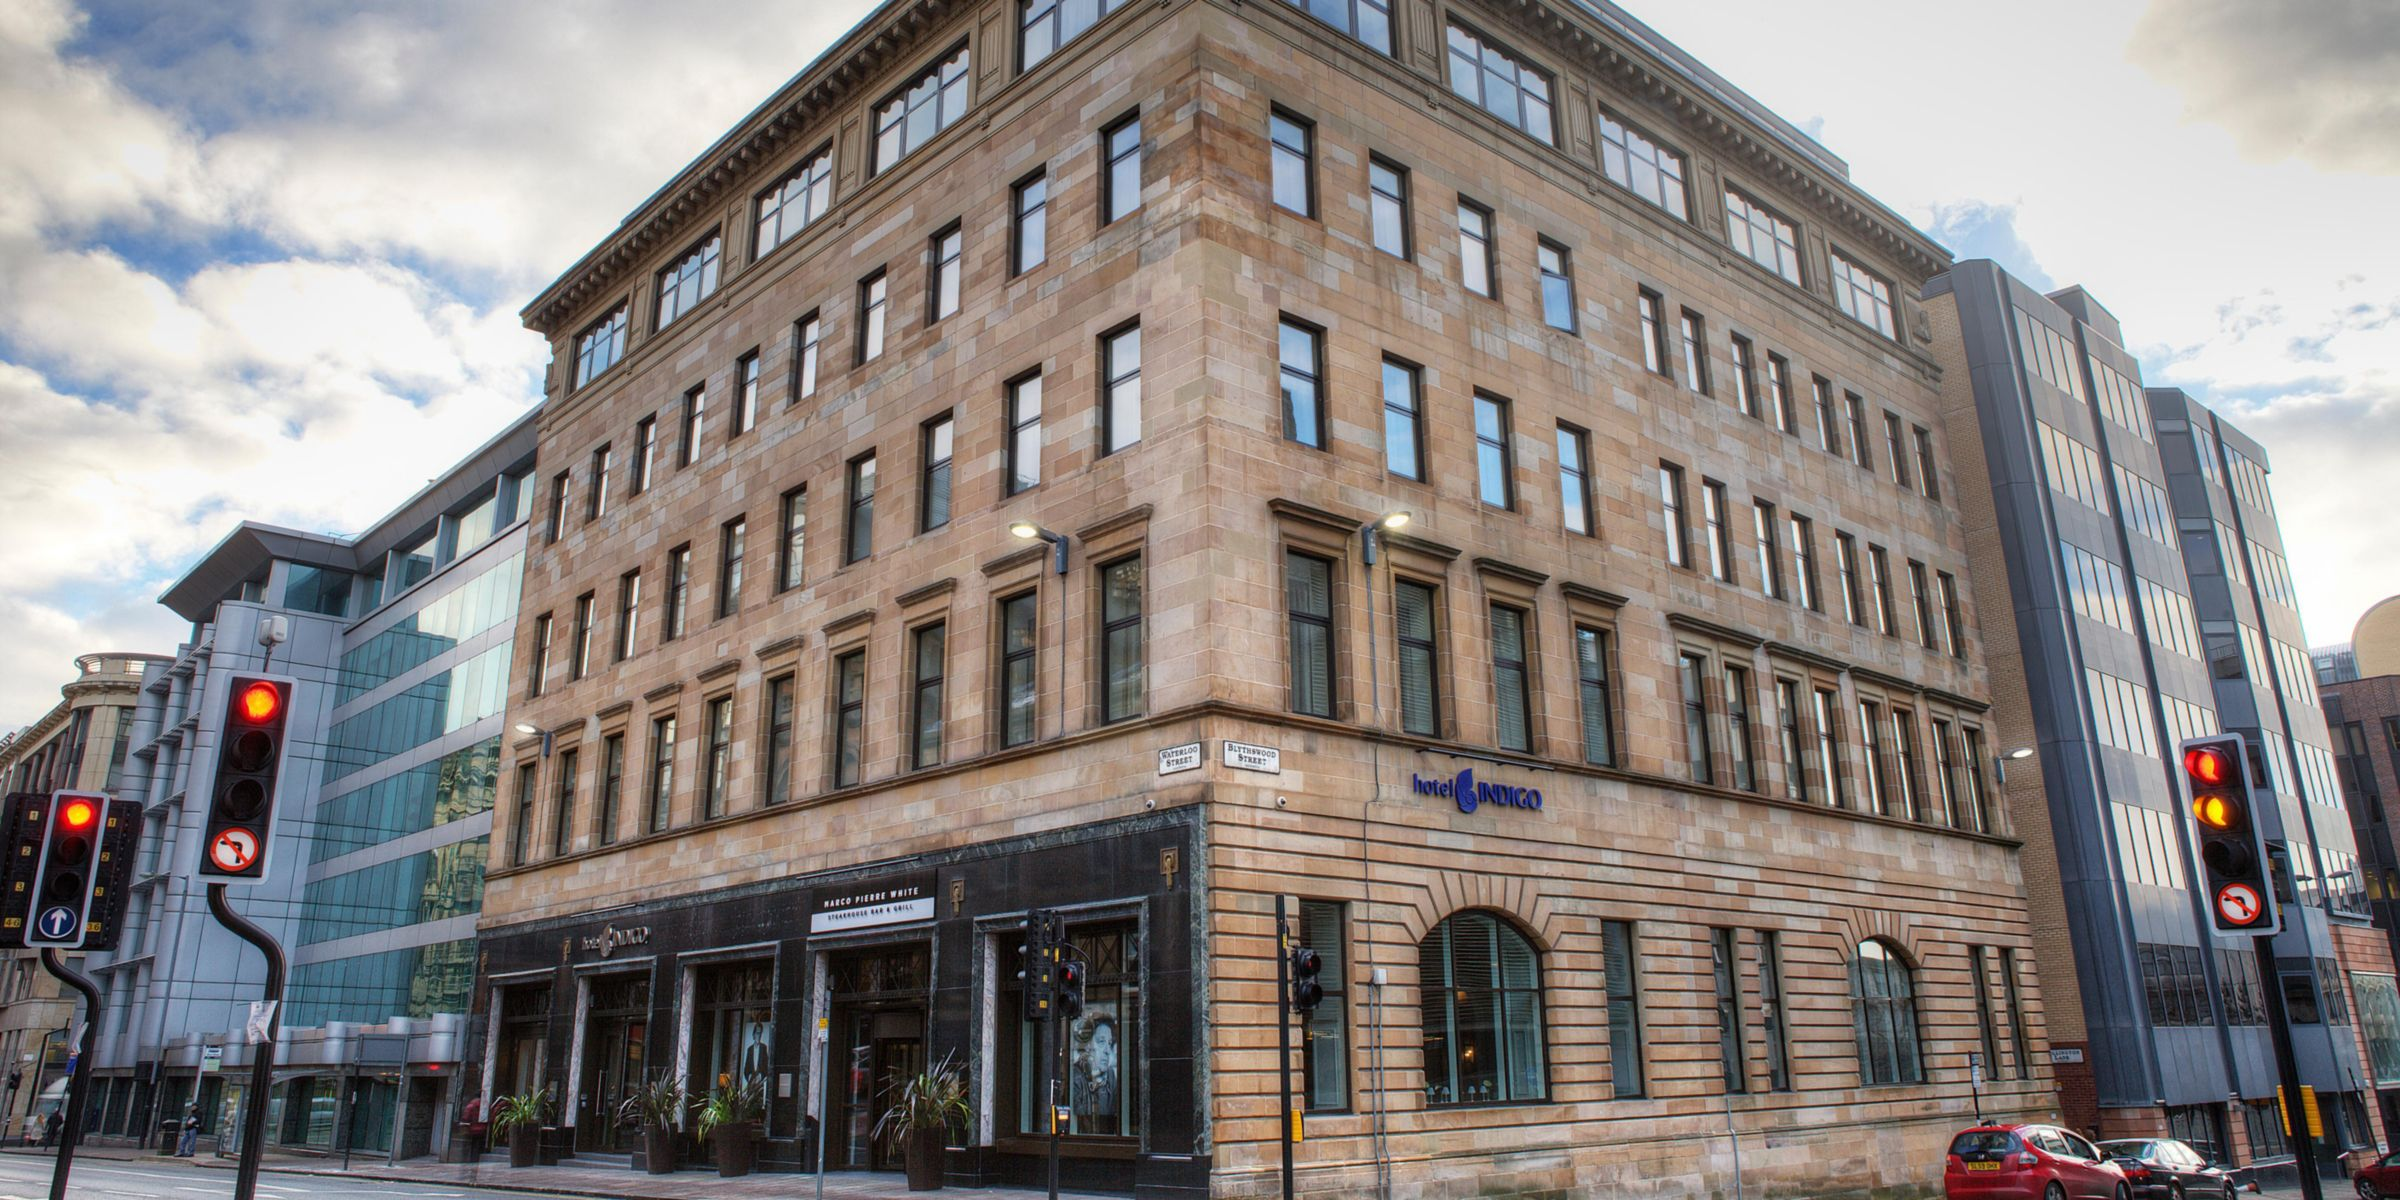 Hotel Indigo Glasgow Is A Beautiful Building Minutes From Central Station